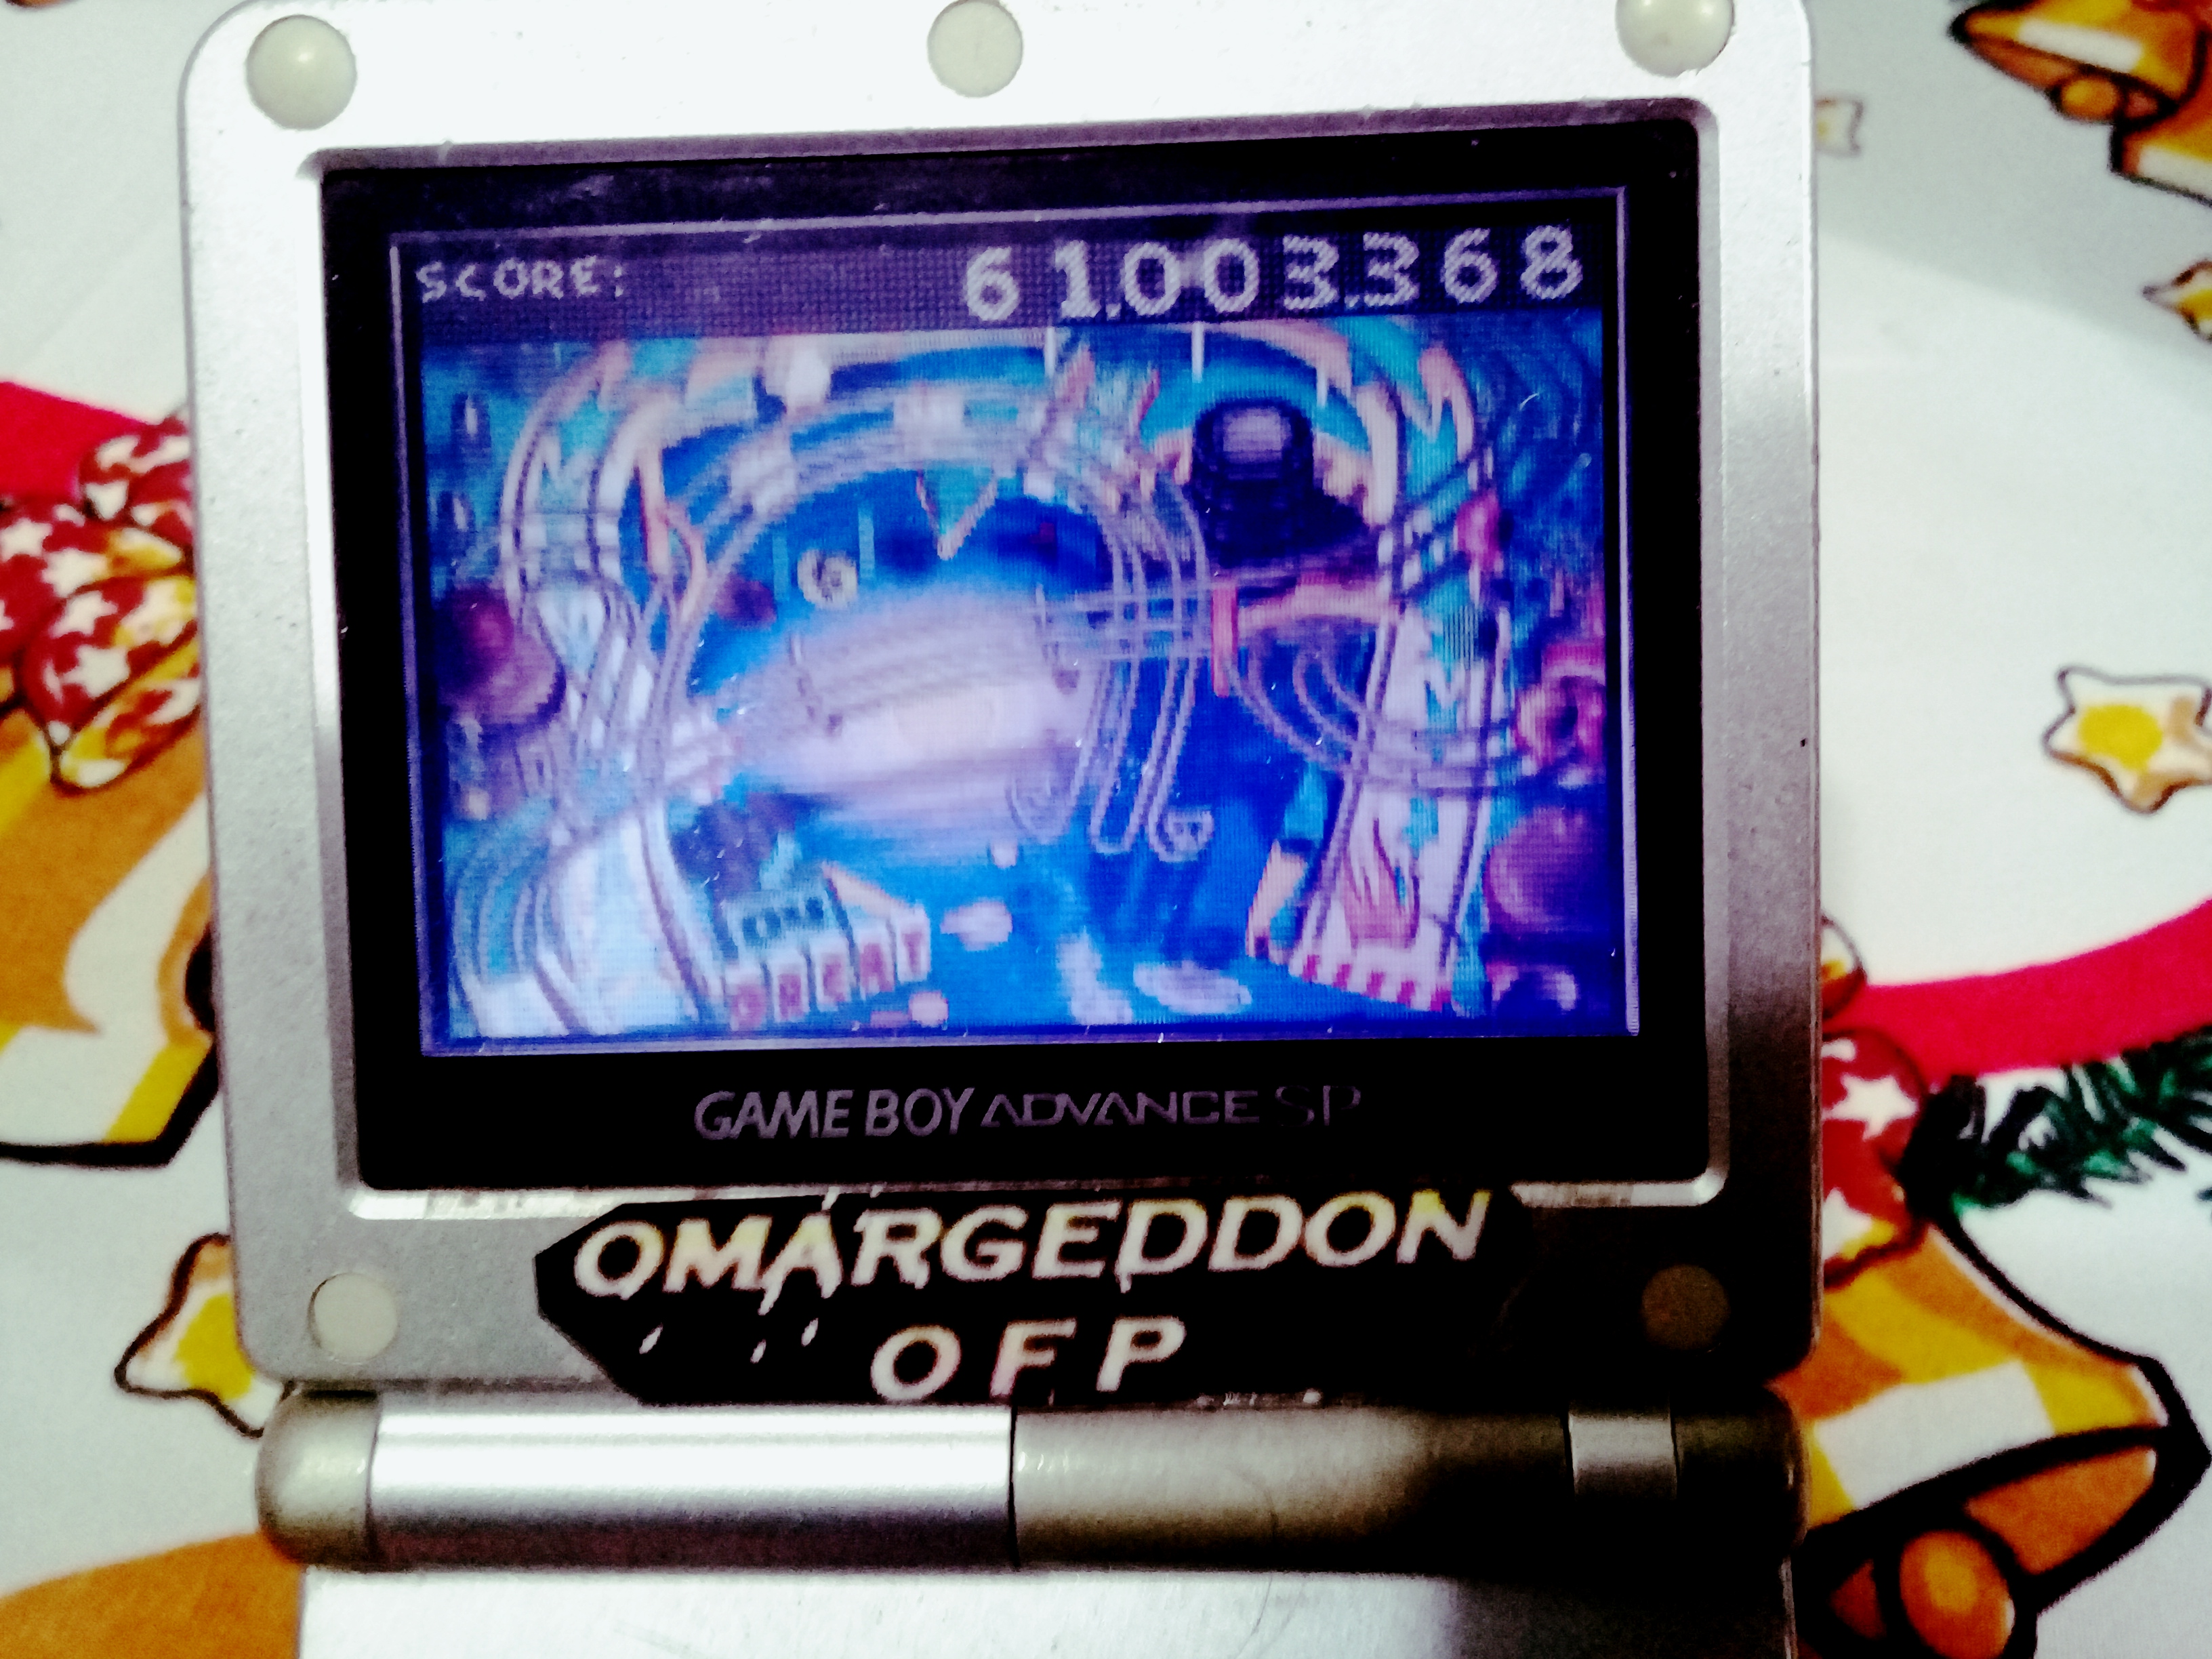 omargeddon: Muppet Pinball Mayhem: Konzo [3 Balls] (GBA) 61,003,368 points on 2019-12-26 16:50:38